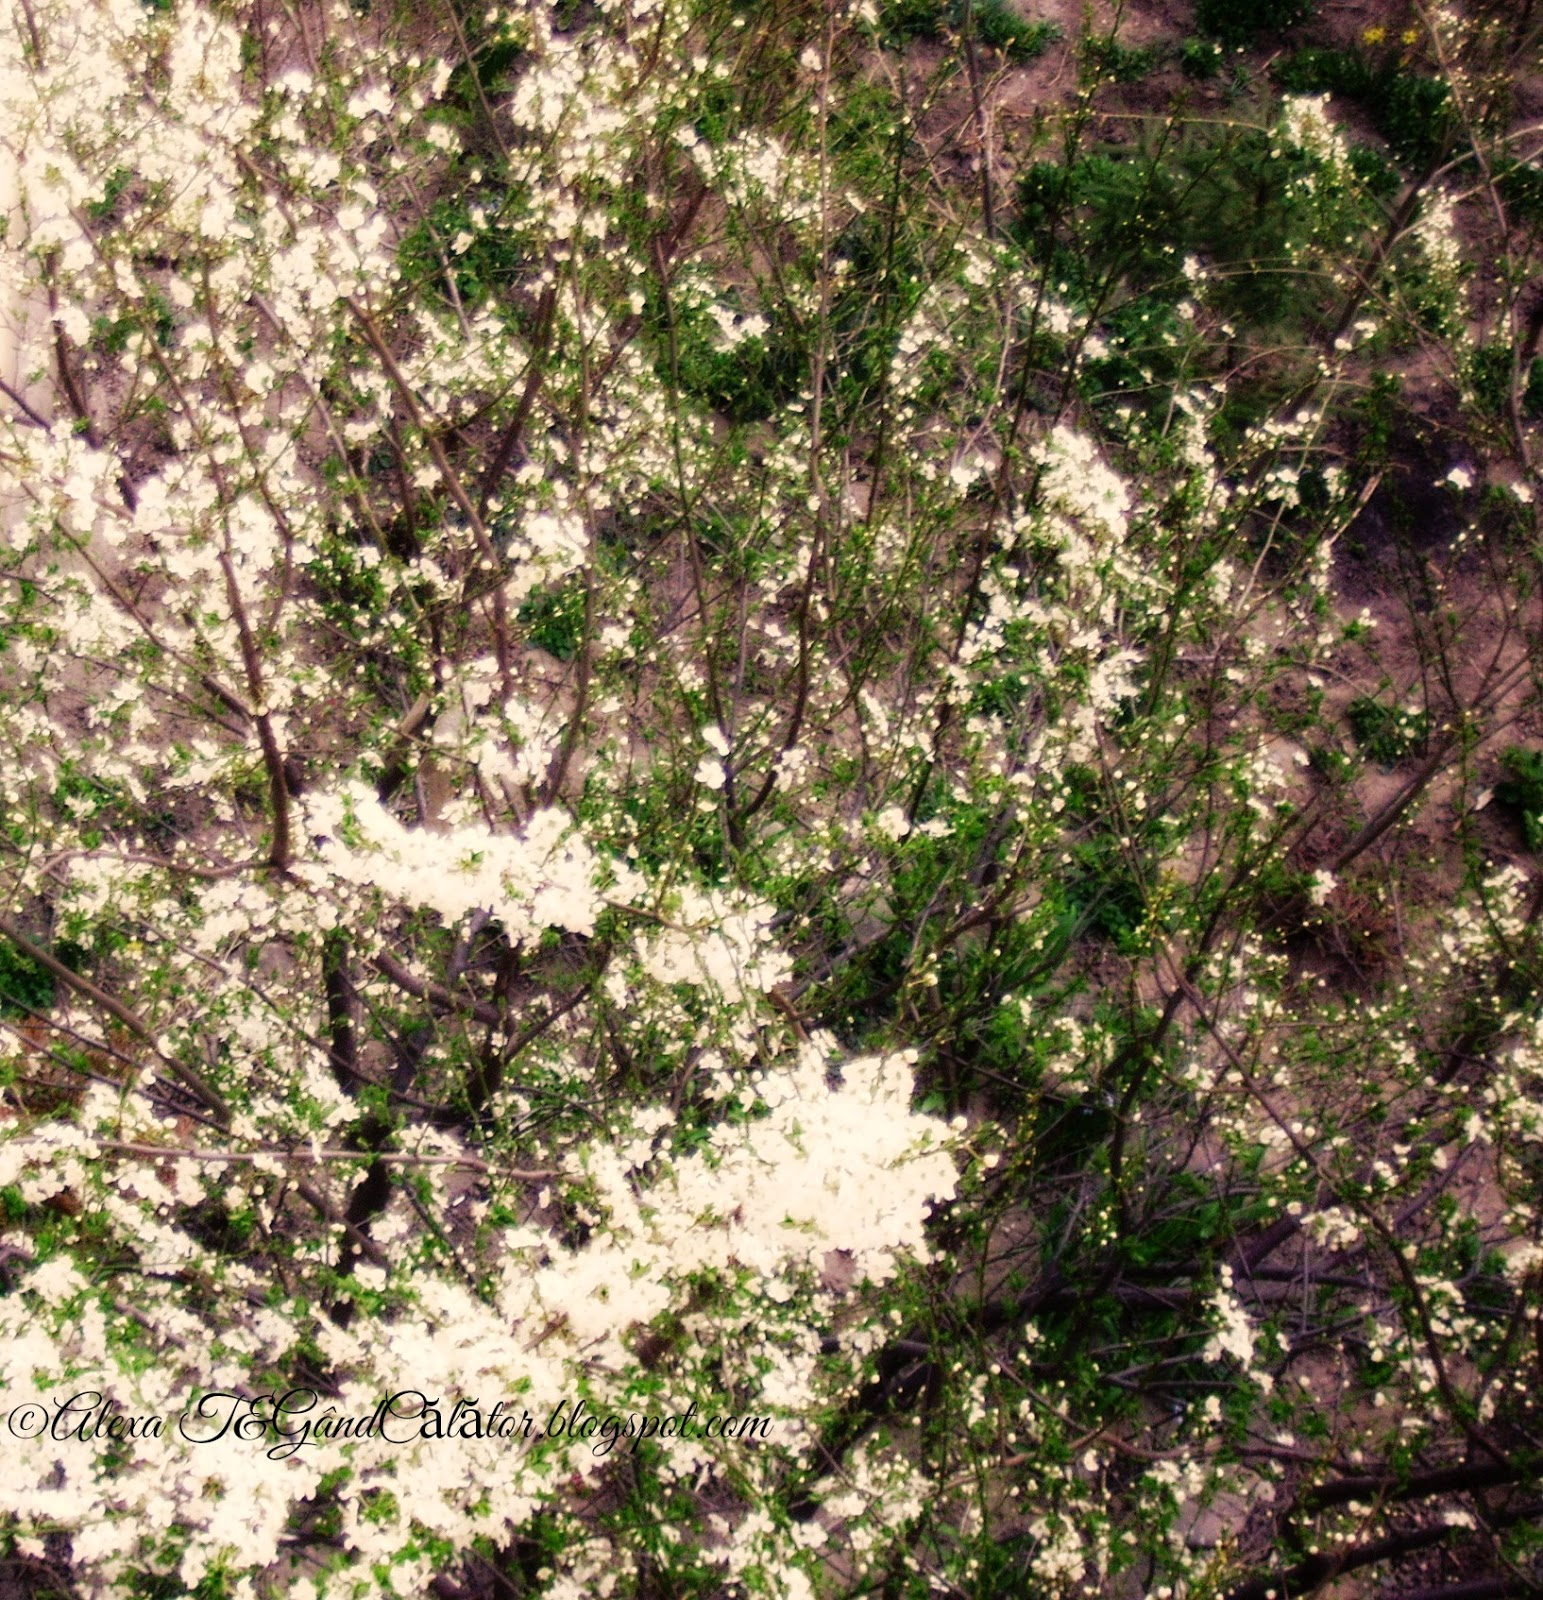 New blooms and the first green leaves on branches of of white cherry plum (Corcodușul - Prunus cerasifera, sinonim P. divaricata) in Springtime of March, 26, 2015.